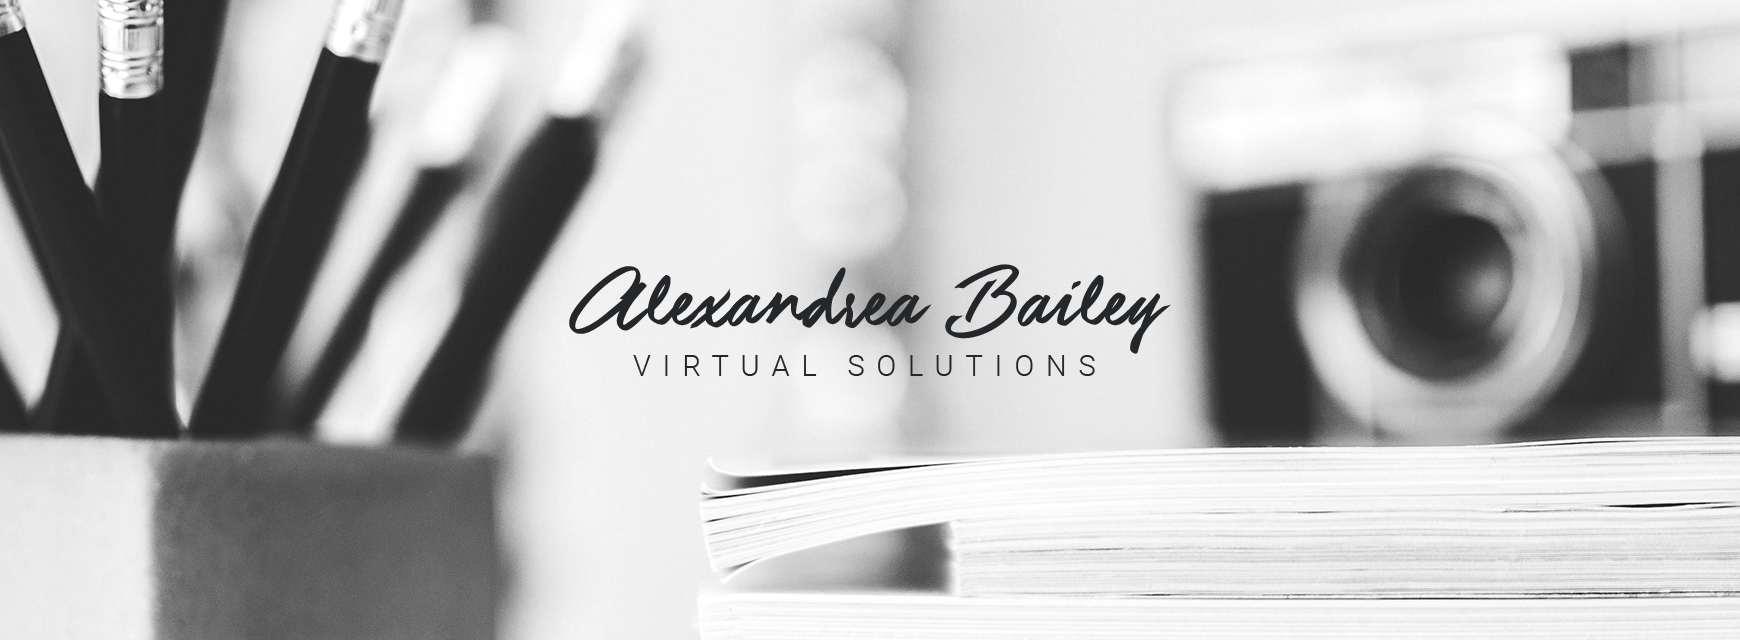 Alexandrea Bailey Case Study